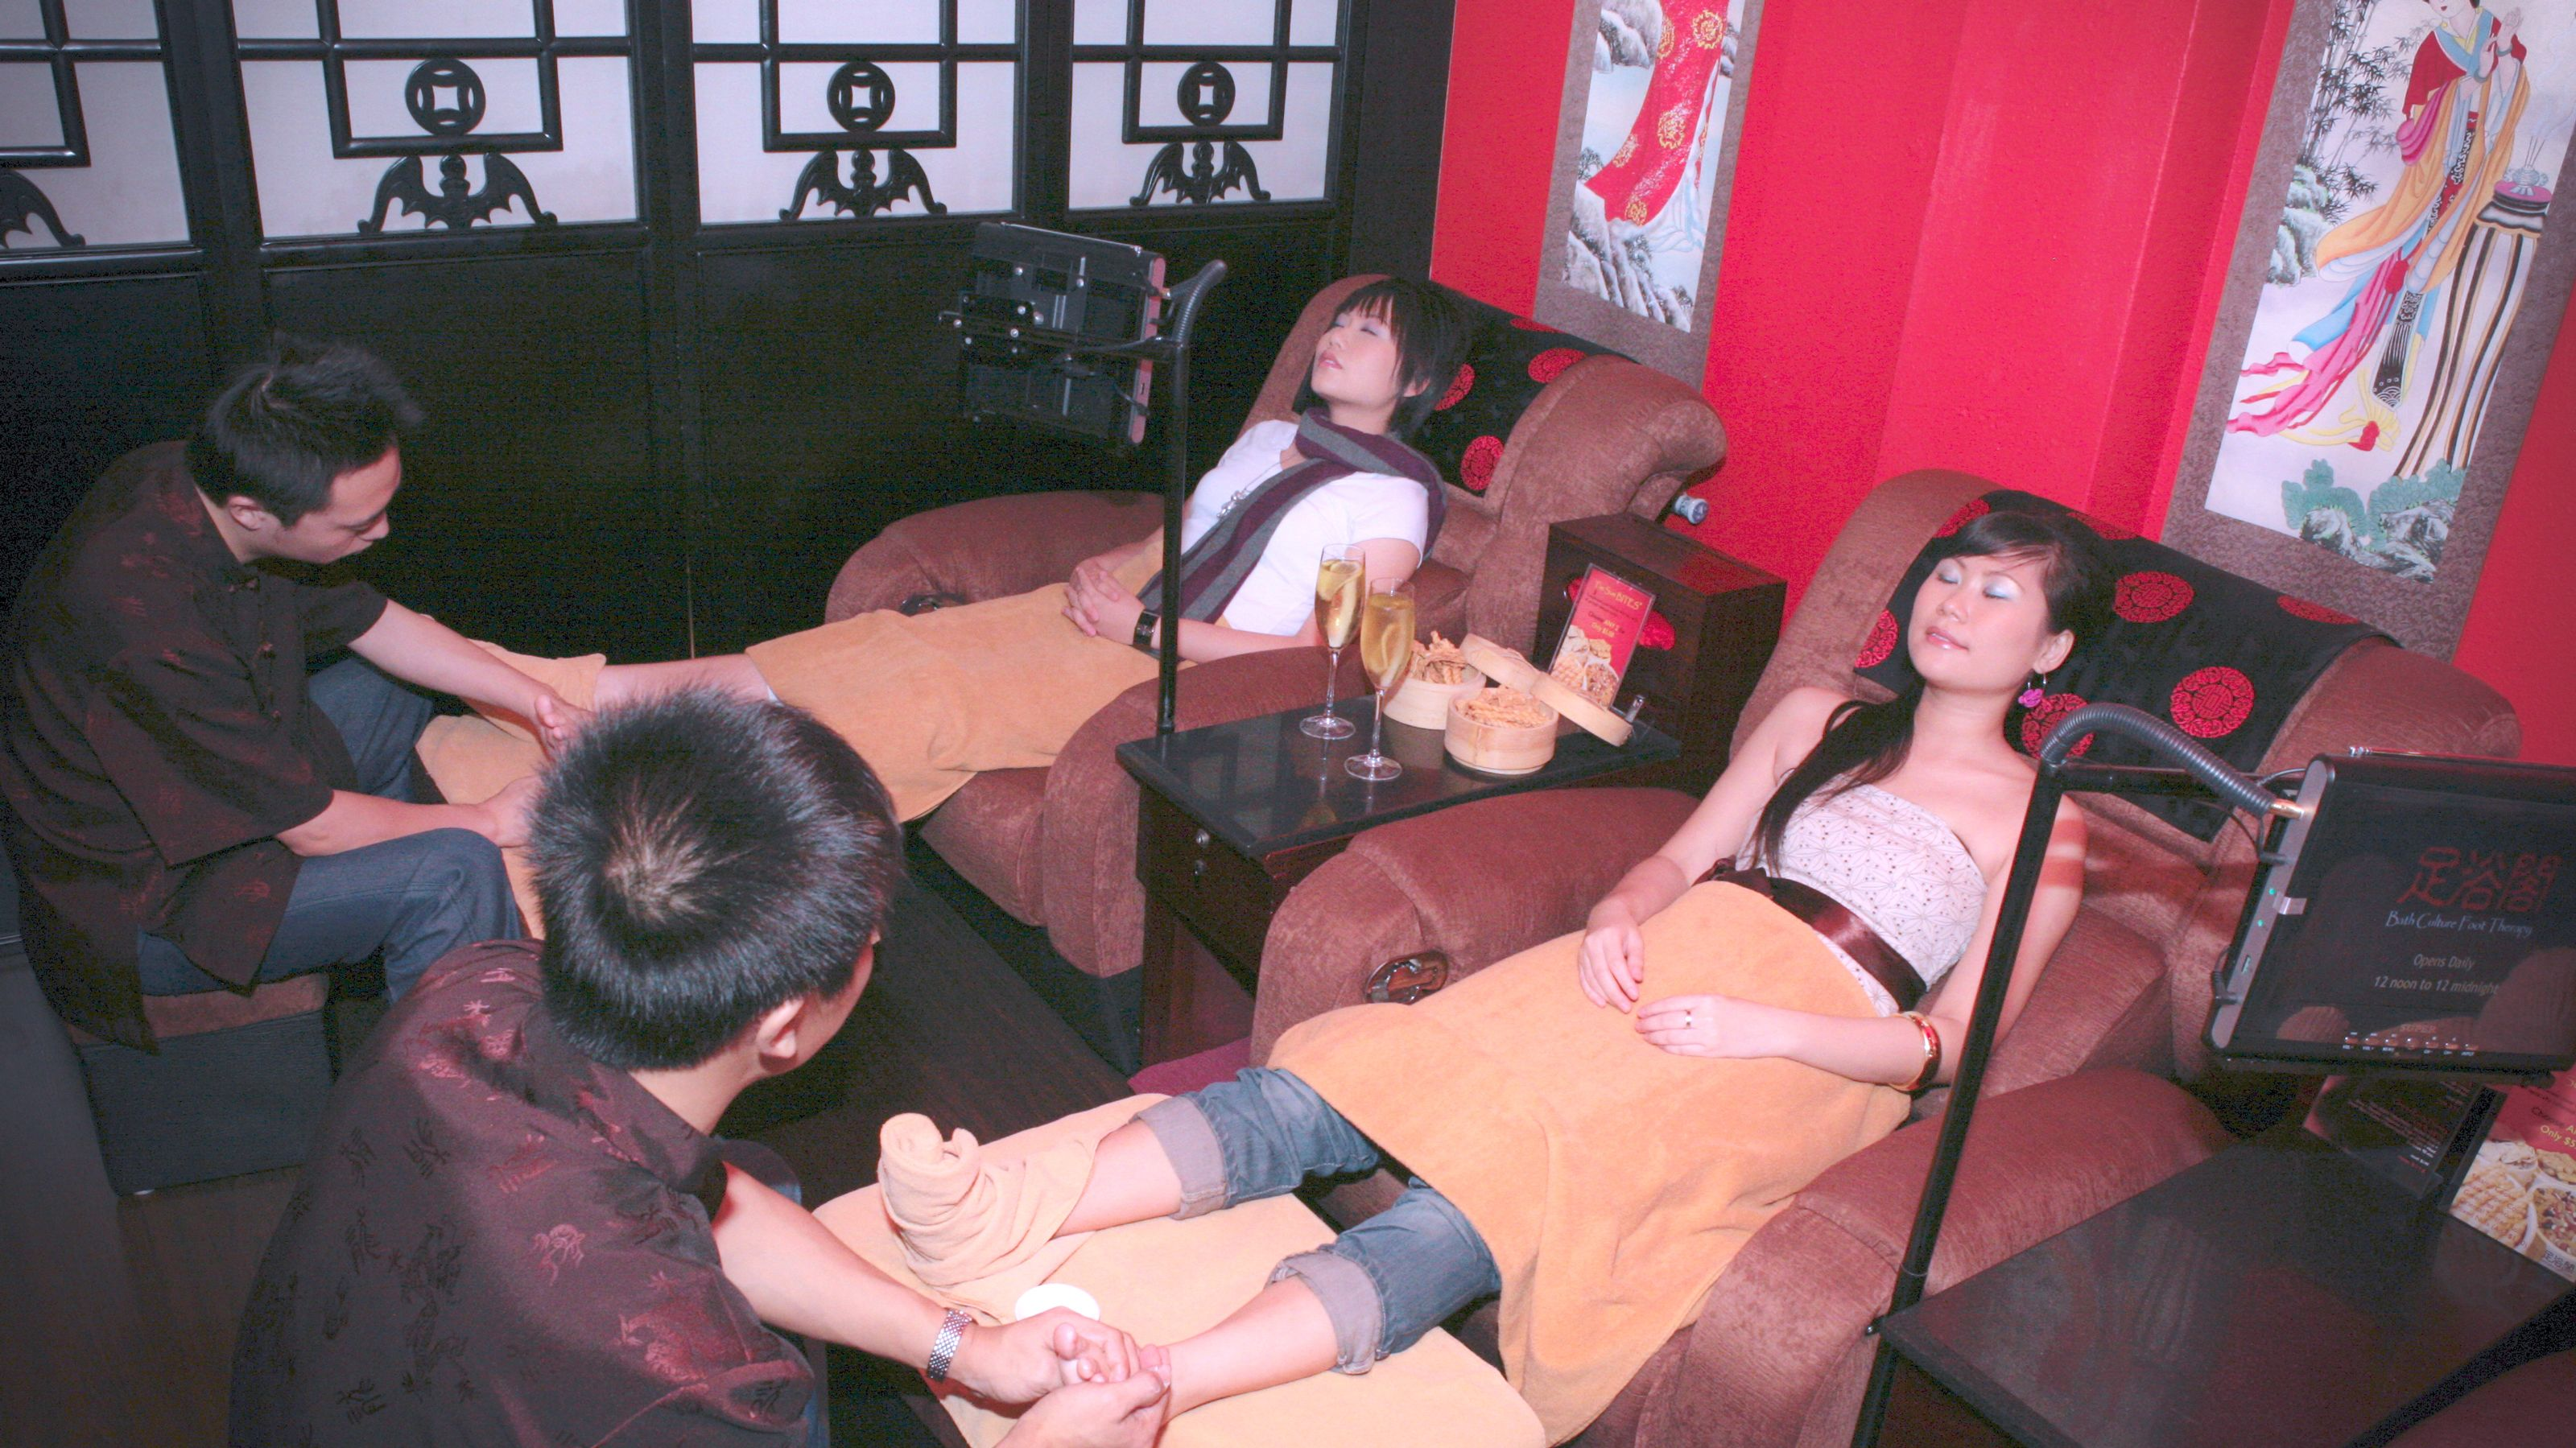 Women relaxing while men tend to their feet in Singapore